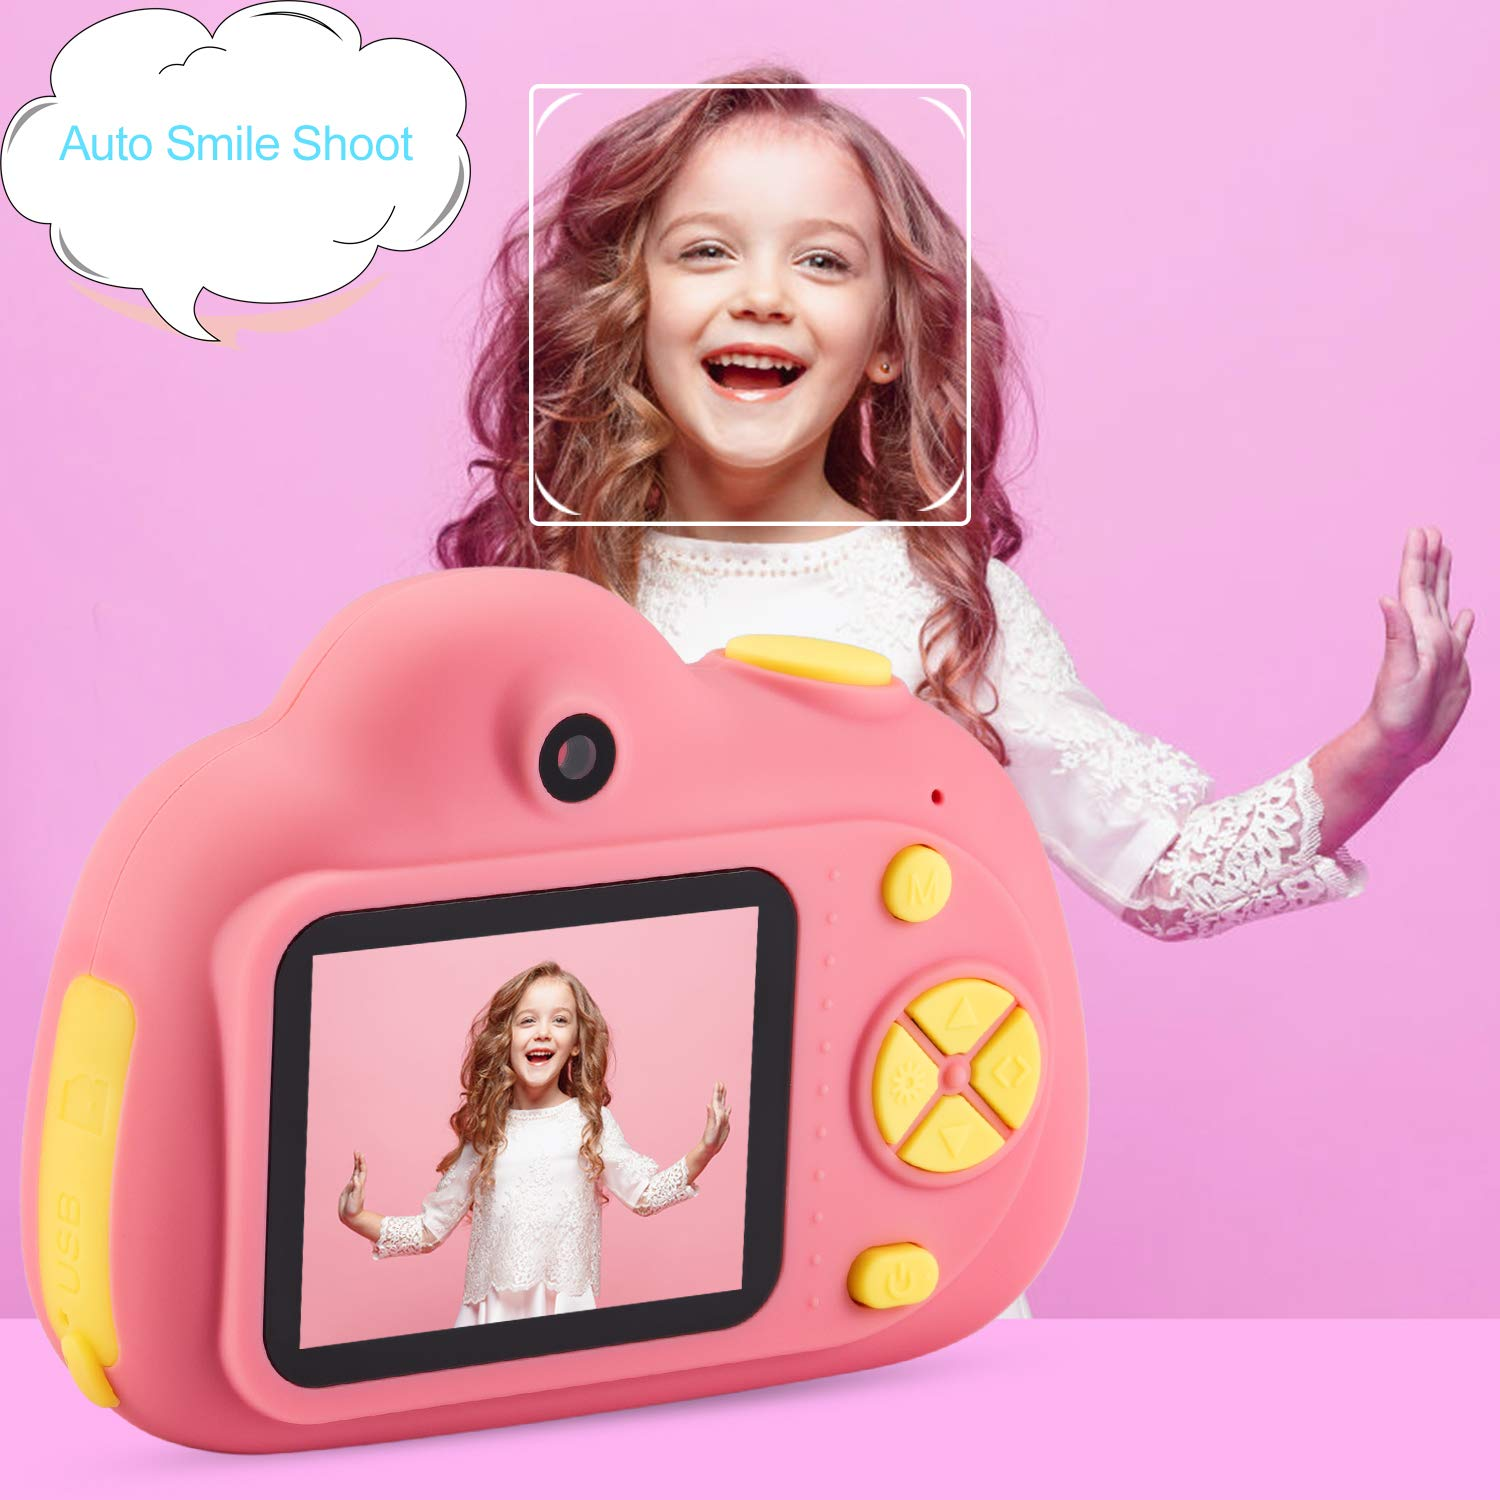 Deeteck Kids Digital Camera,Dual 8MP HD Video Toy Cameras,Gifts for 4-8 Year Old Girls & Boys,Mini Camcorders for Child Support Selfie with 16GB Memory Card(Pink) by Deeteck (Image #3)